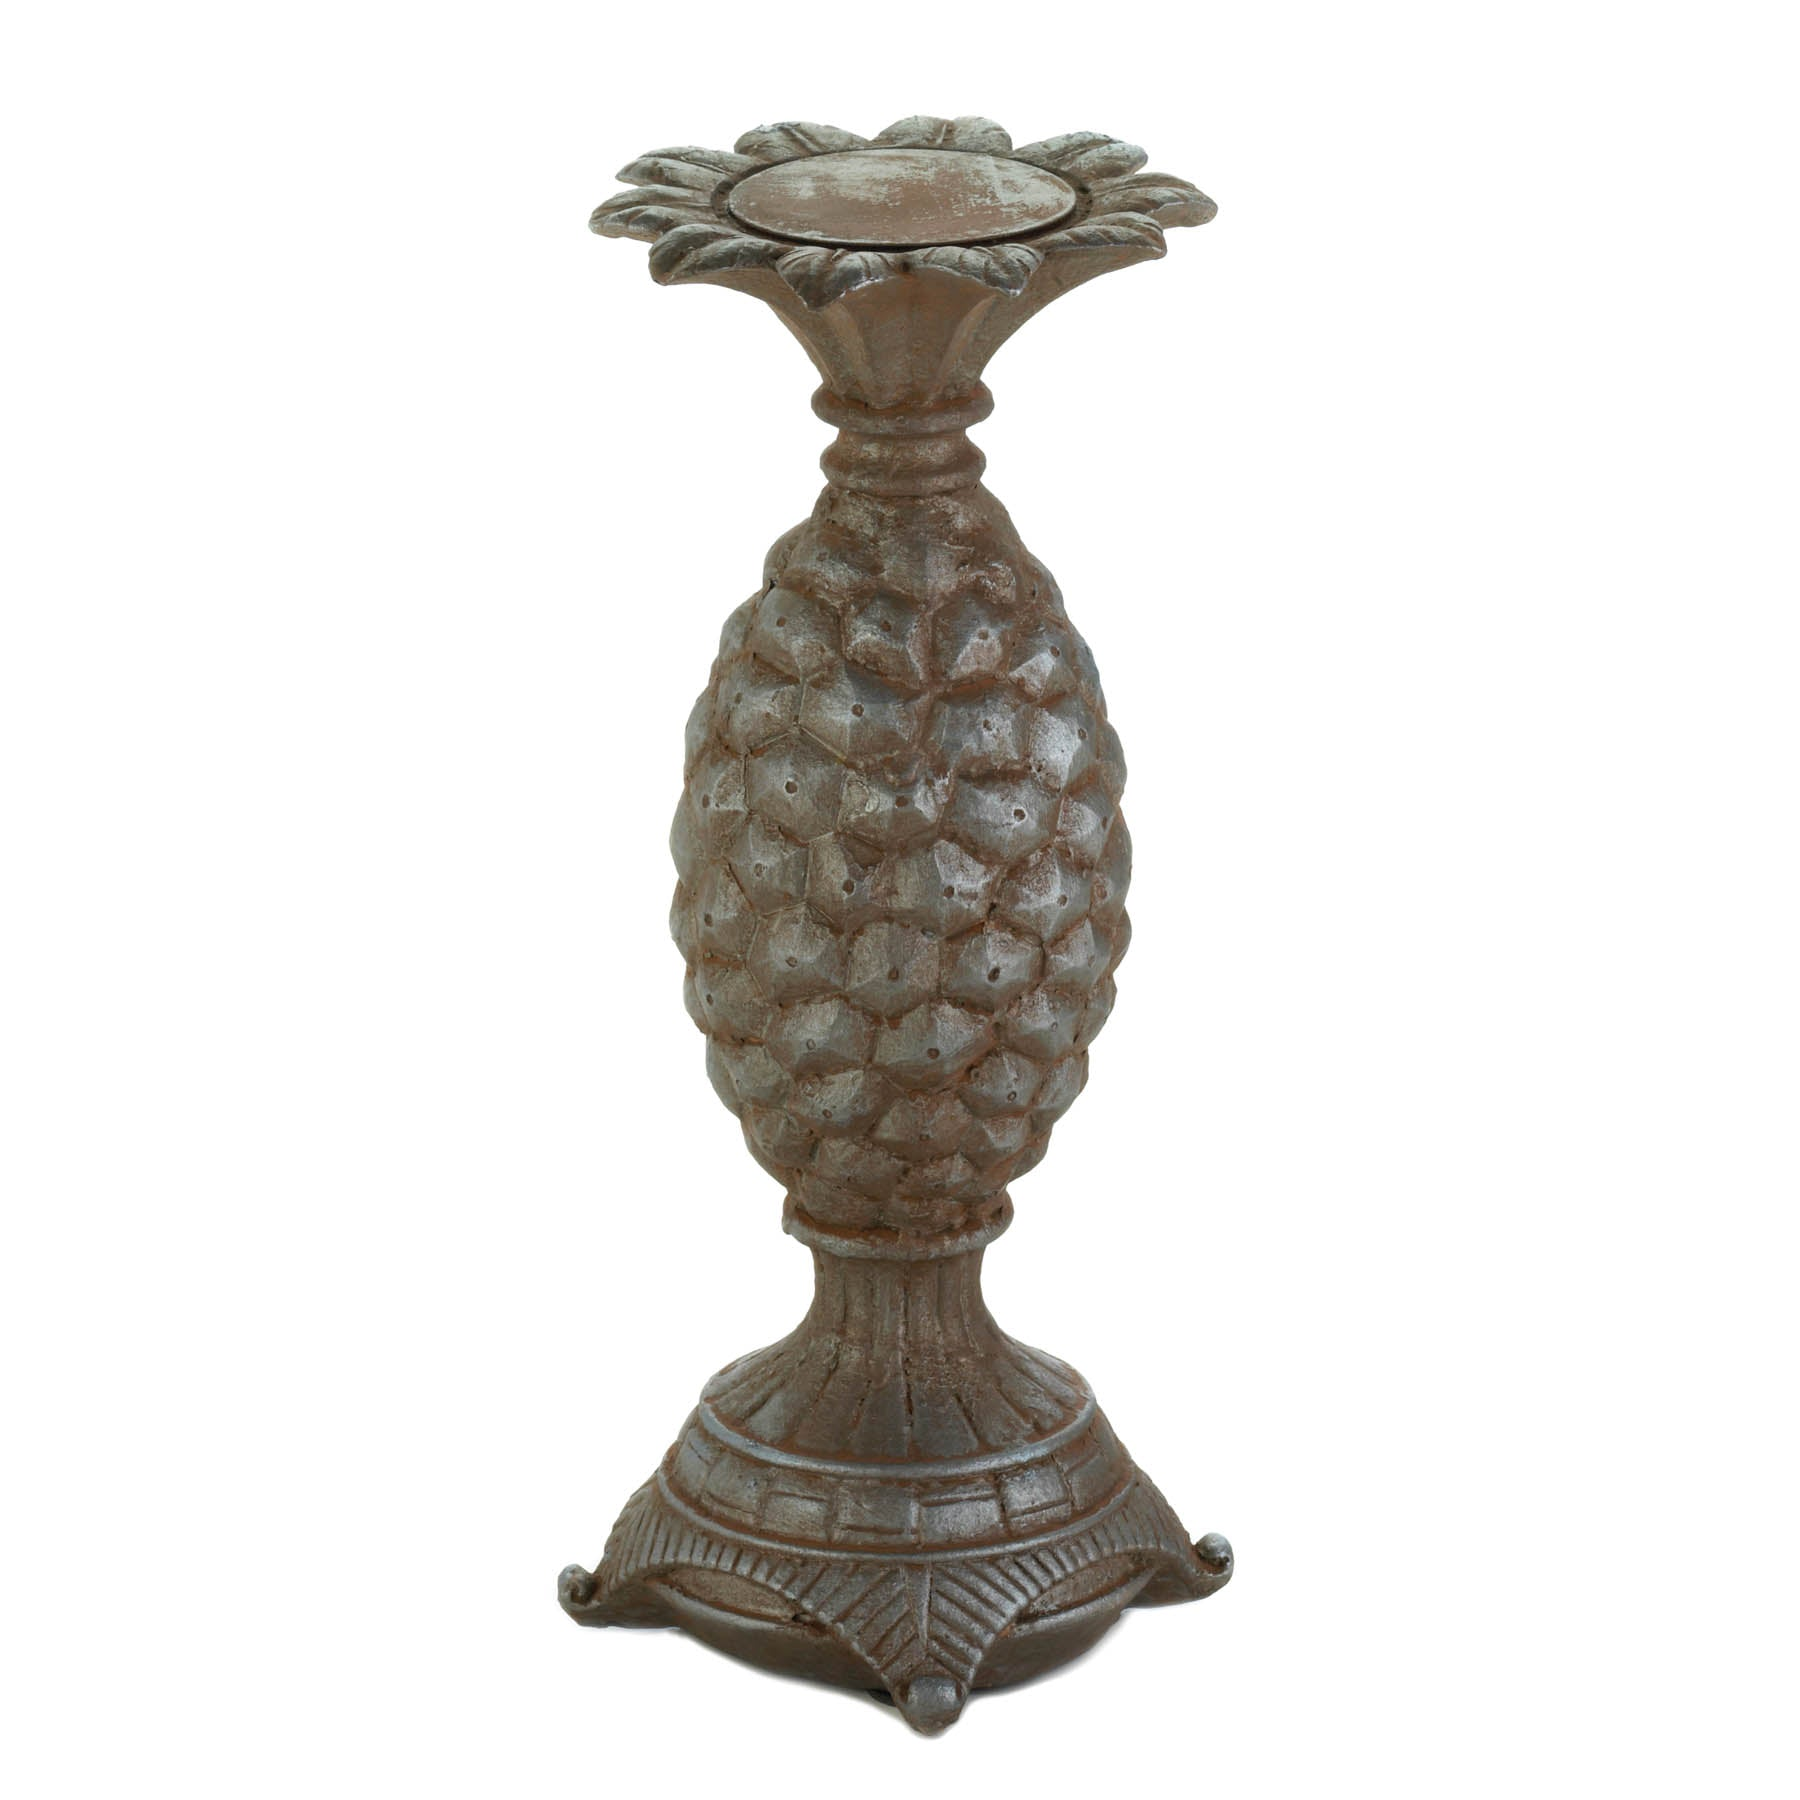 Gallery of Light Large Pineapple Candleholder - 10017288